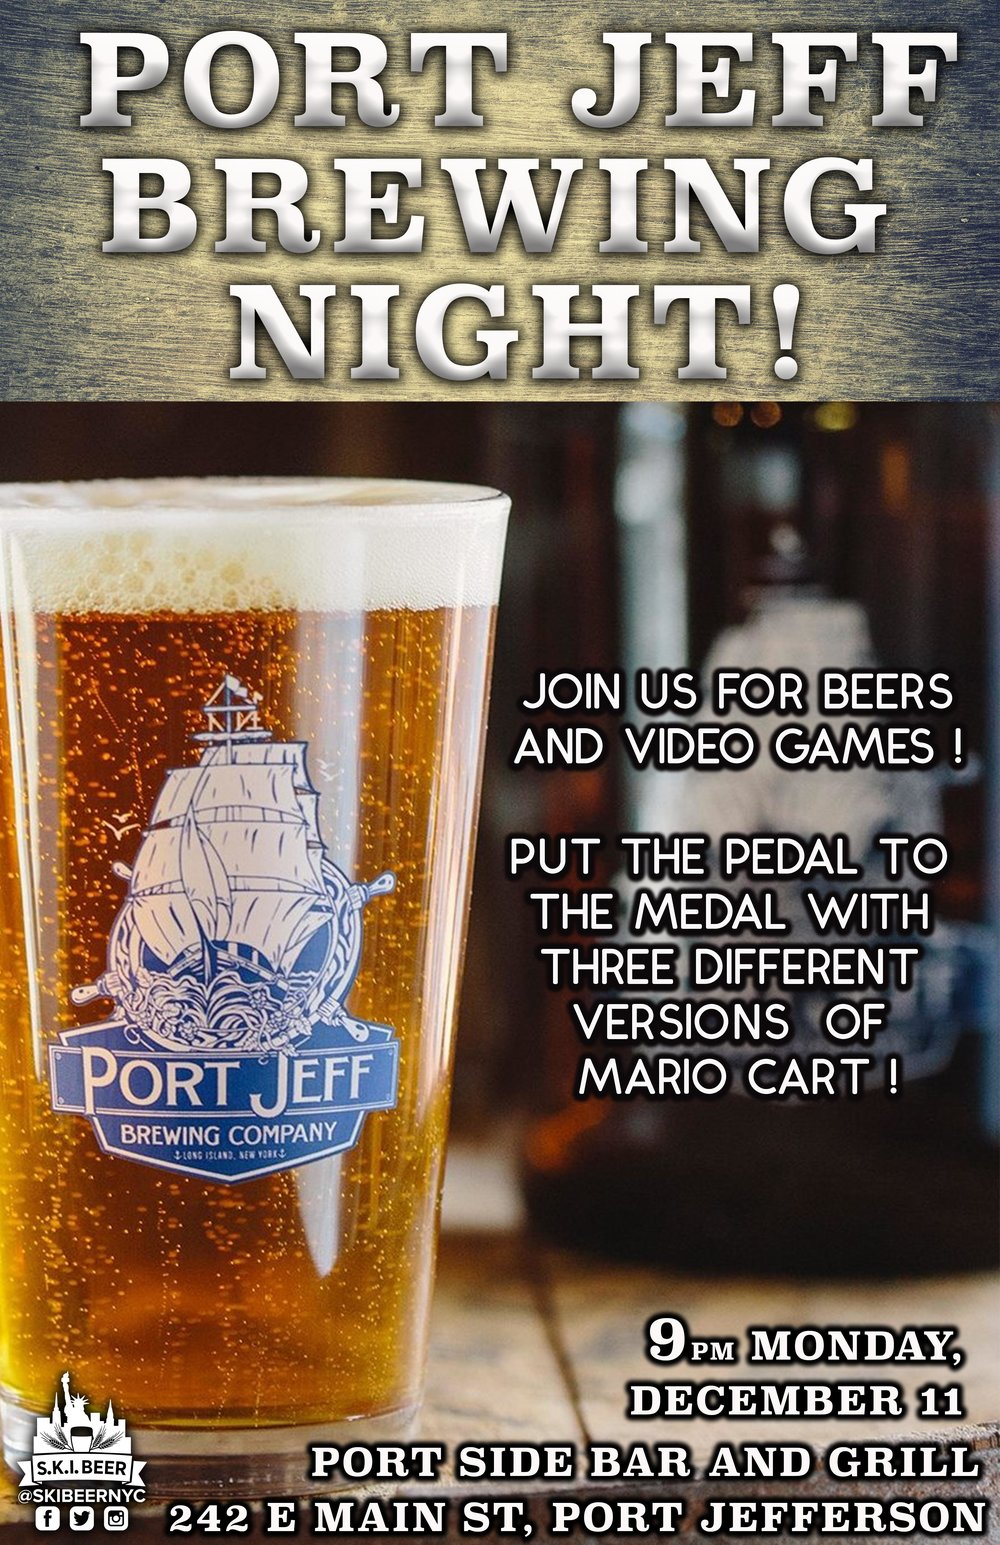 PORT SIDE BAR AND GRILL_ PORT JEFF BREWING.jpg